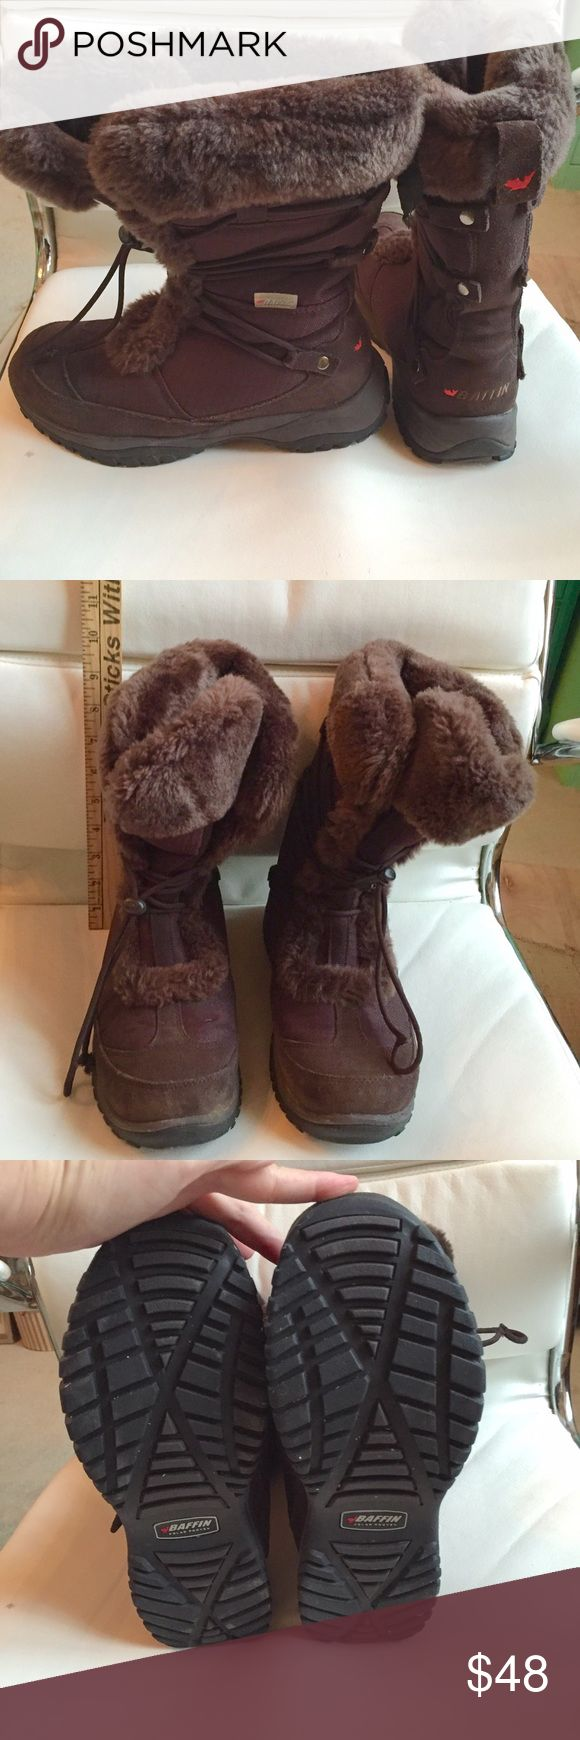 Baffin Winter Boots Worn three times, like new, soles are perfect!  The toggle laces are AWESOME!  No tying!  These boots will totally give your feet the warm fuzzies!  Listed for 69% off original price!! Baffin Shoes Winter & Rain Boots